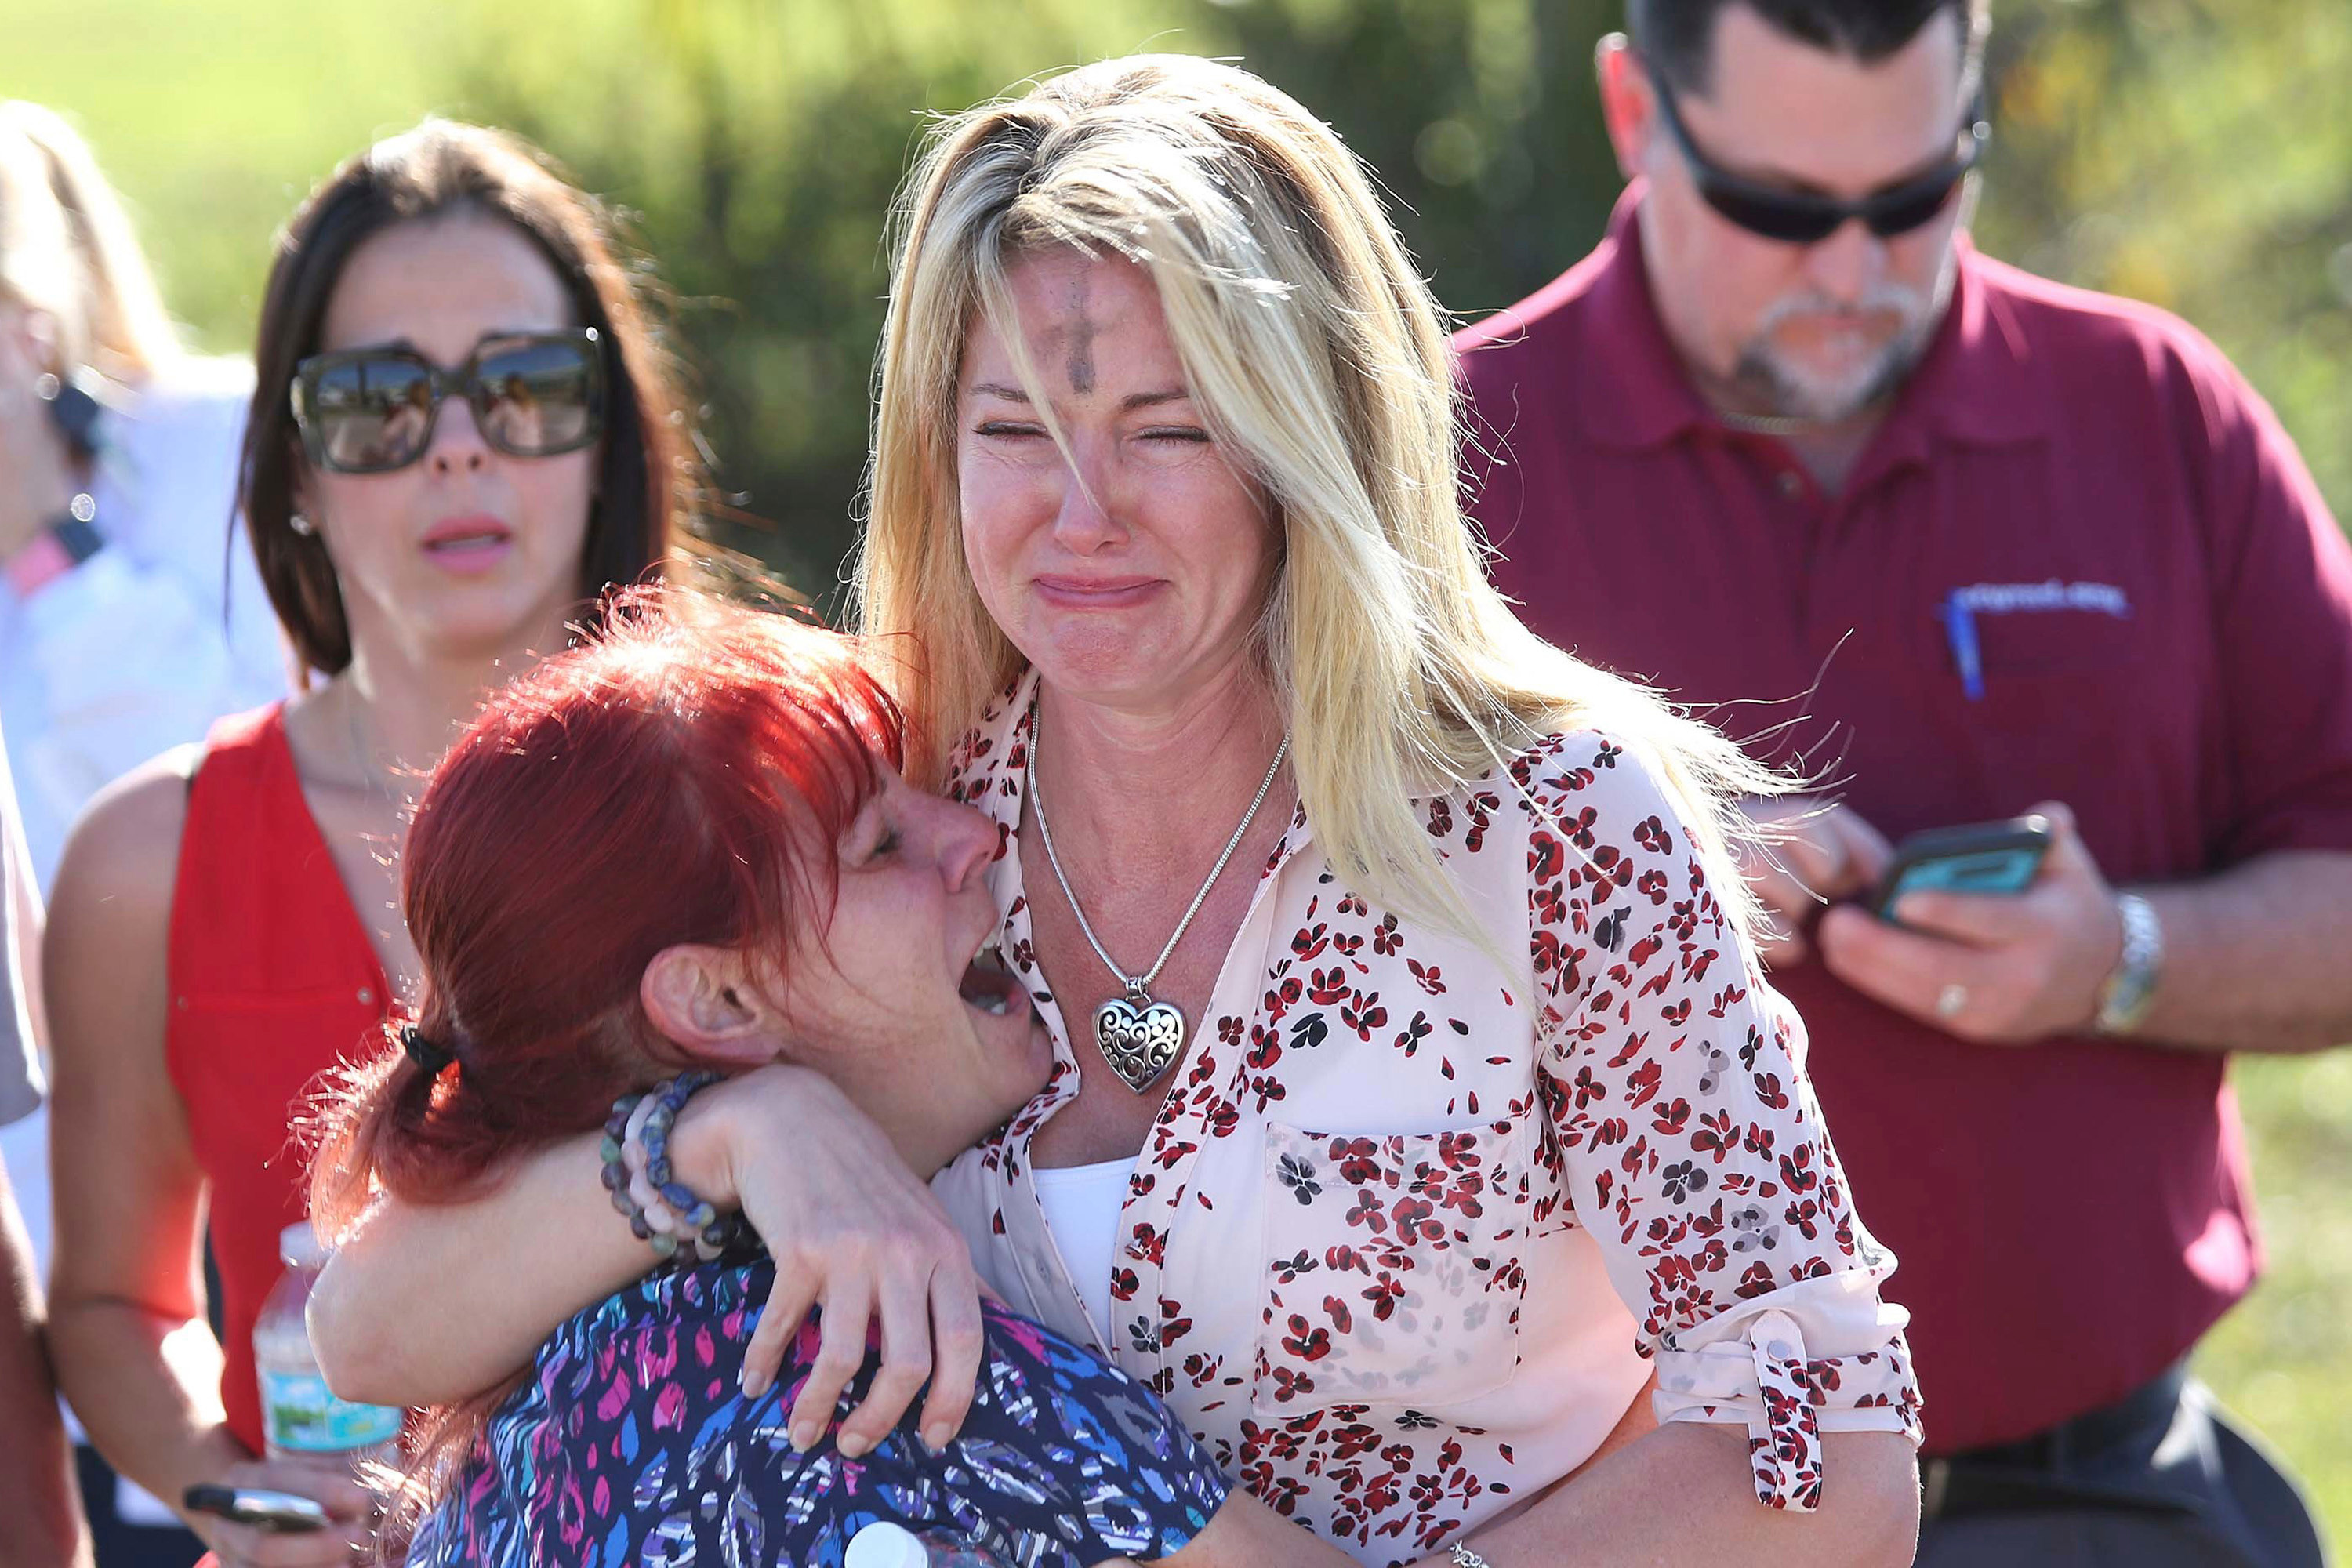 Here's what we know about the Florida high school shooting